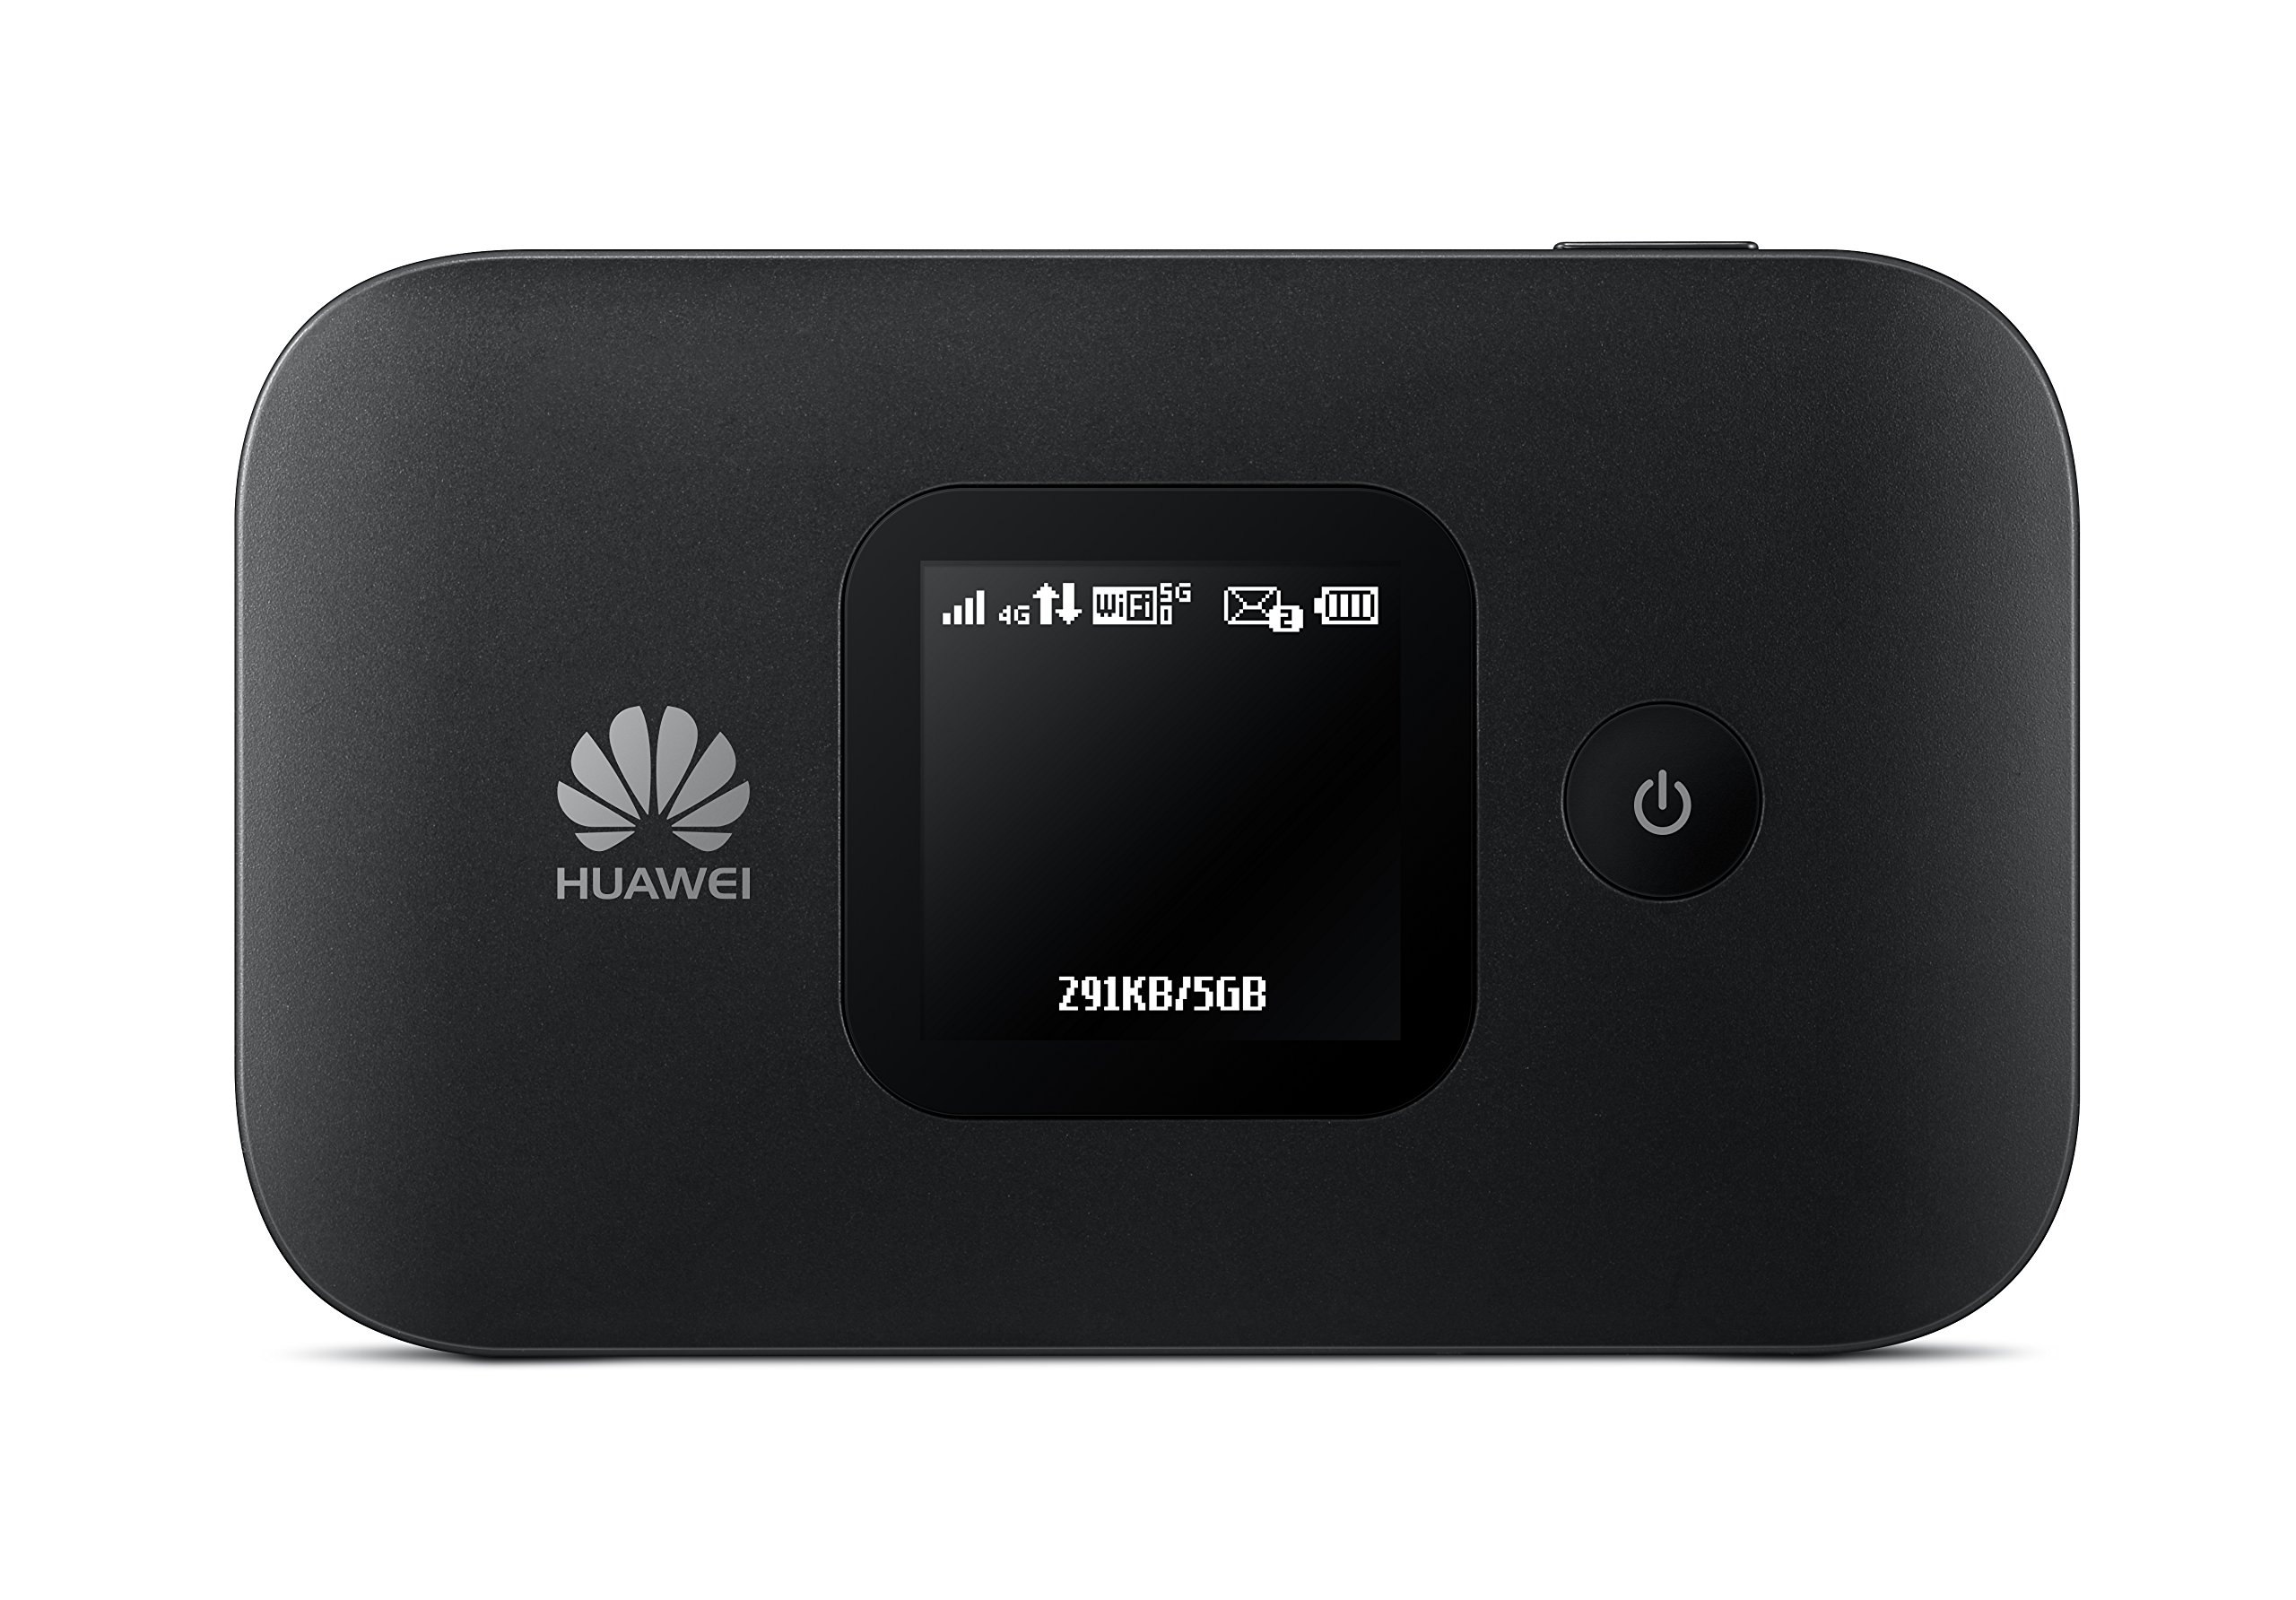 Huawei E5577Cs-321 4G LTE Mobile WiFi Hotspot (4G LTE in Europe, Asia, Middle East, Africa & 3G globally) Unlocked/OEM/ORIGINAL from Huawei WITHOUT CARRIER LOGO (Black) by HUAWEI